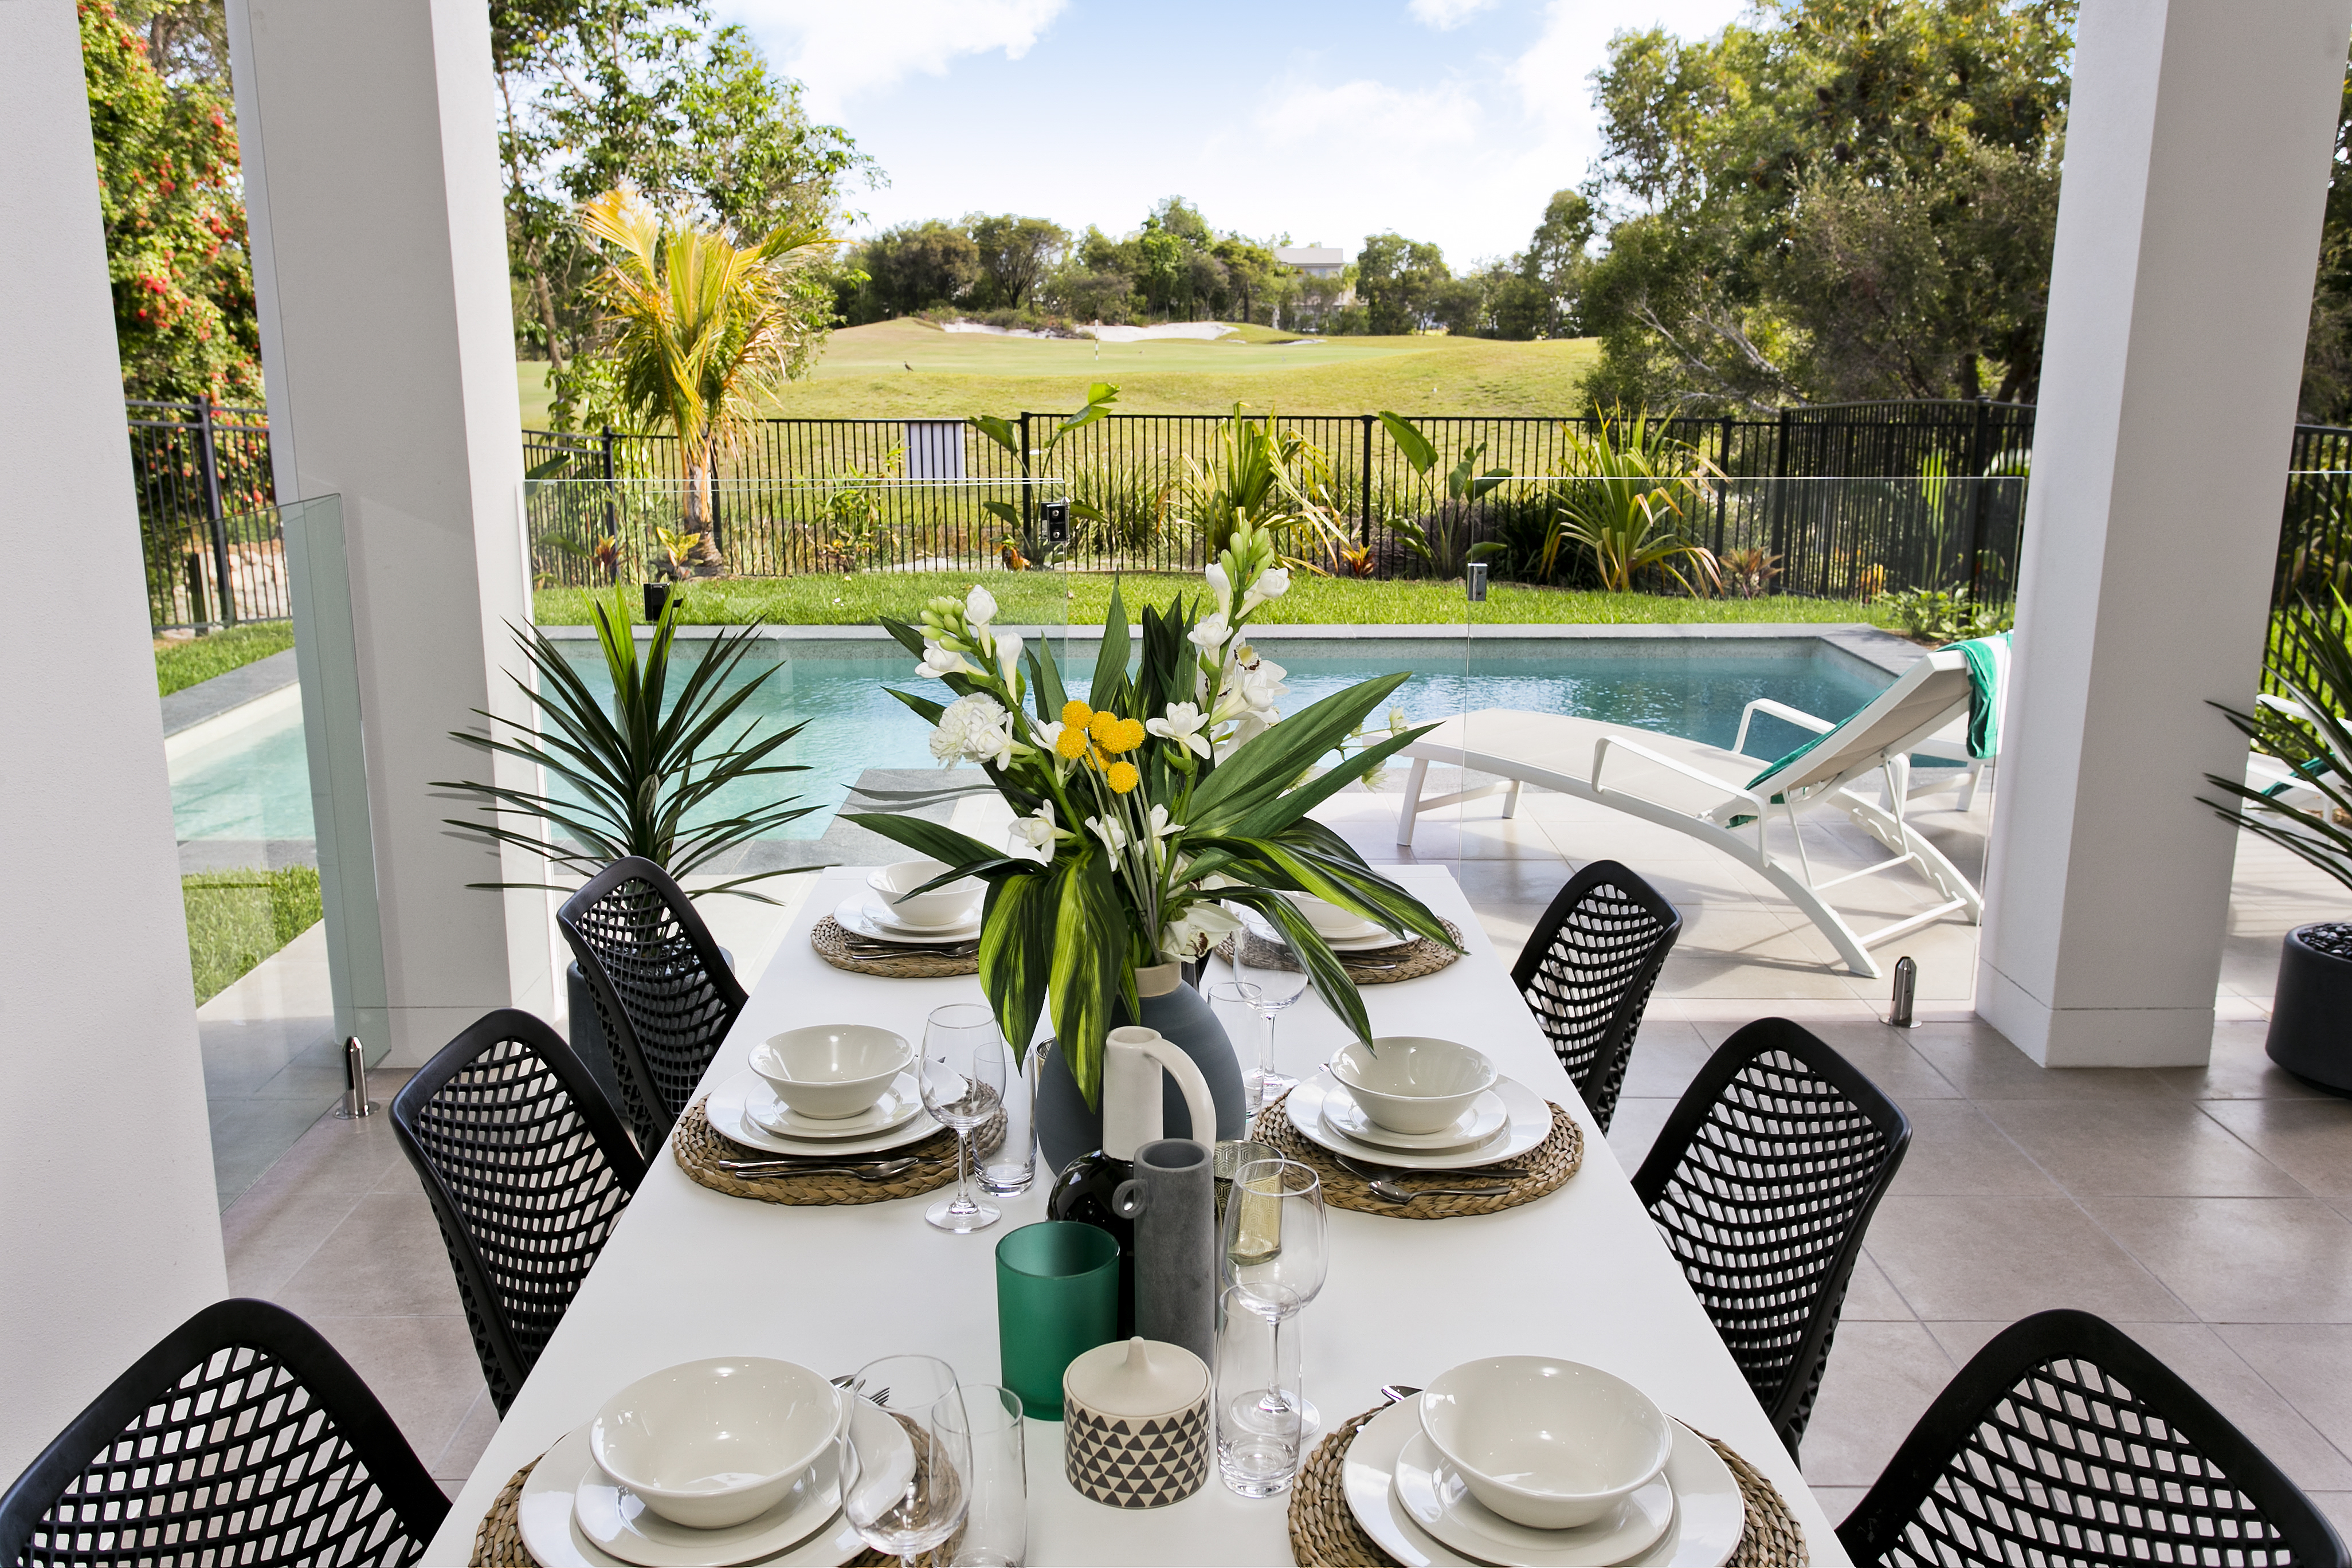 STYLISH ENTERTAINERS DELIGHT WITH POOL & GLORIOUS LANDSCAPED OUTLOOK